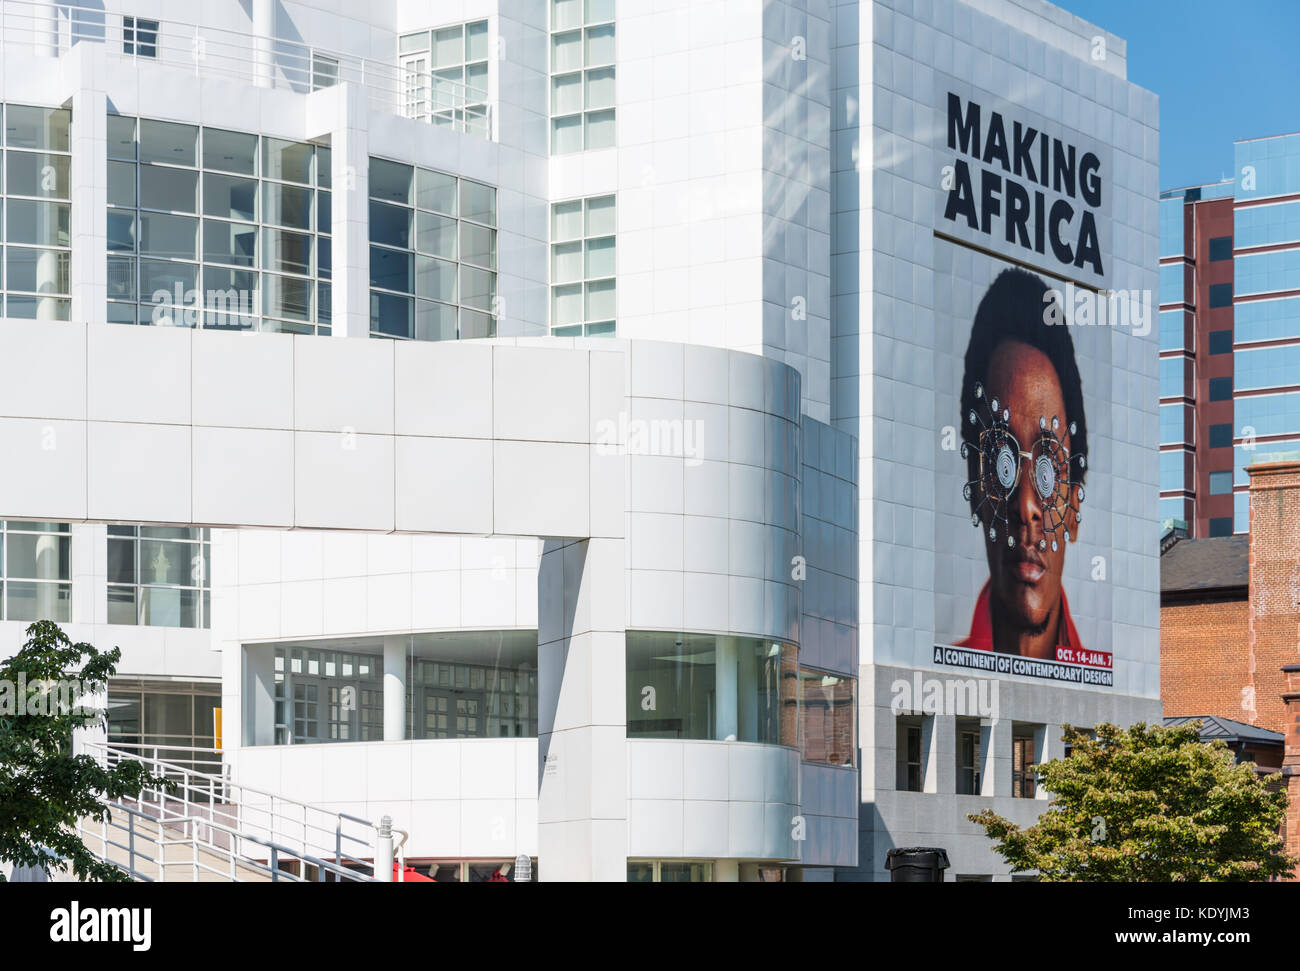 The High Museum of Art on Peachtree Street in Atlanta, Georgia, USA. - Stock Image